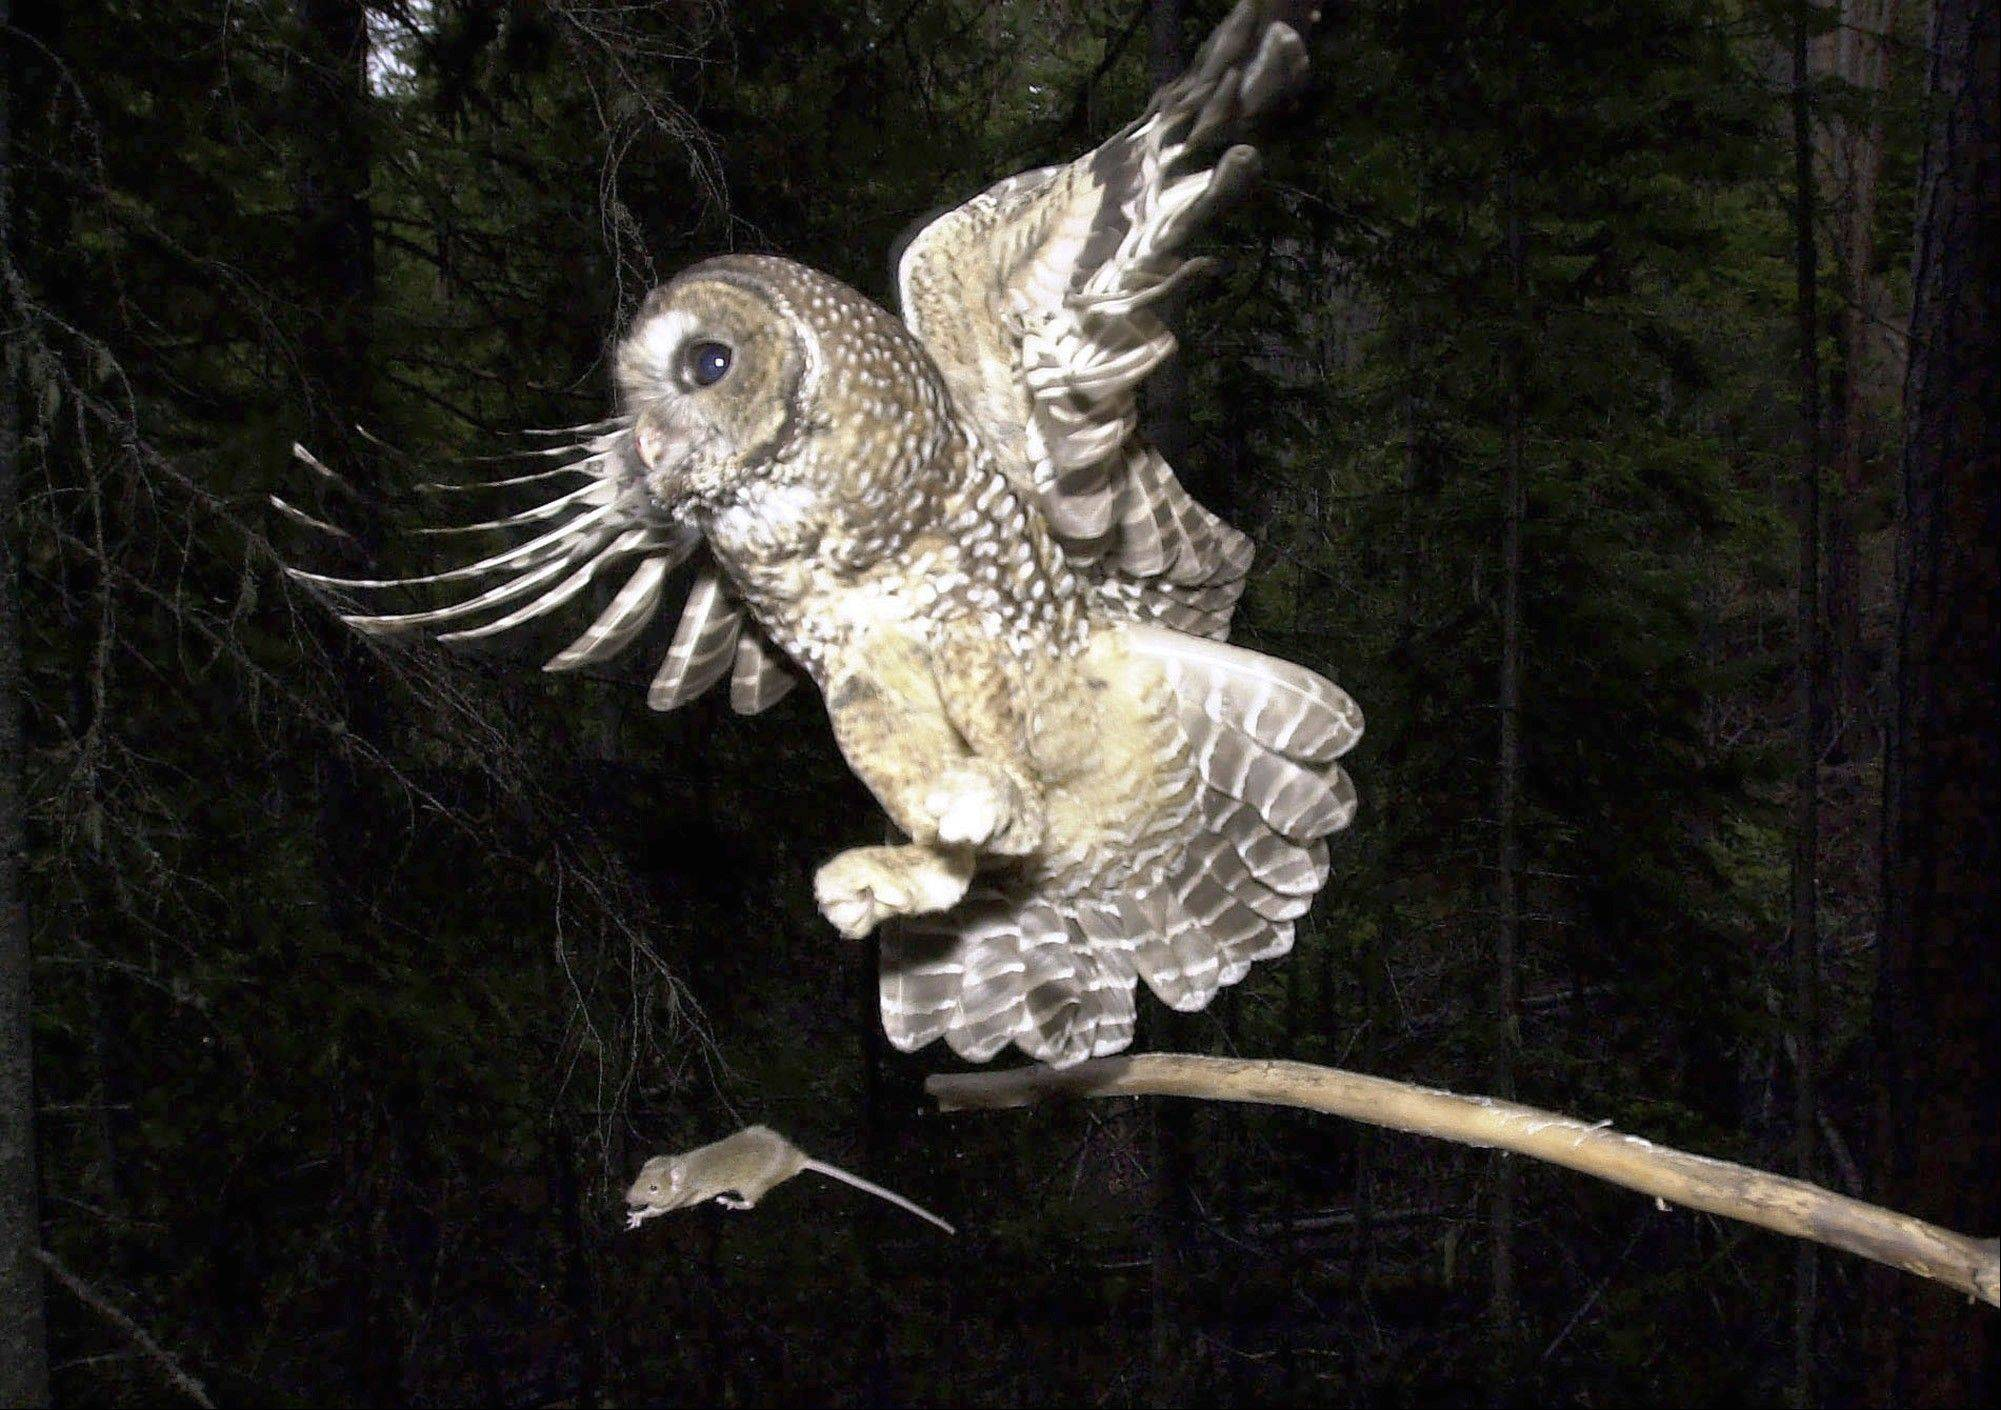 A northern spotted owl flies after an elusive mouse jumping off the end of a stick in the Deschutes National Forest near Camp Sherman, Ore.